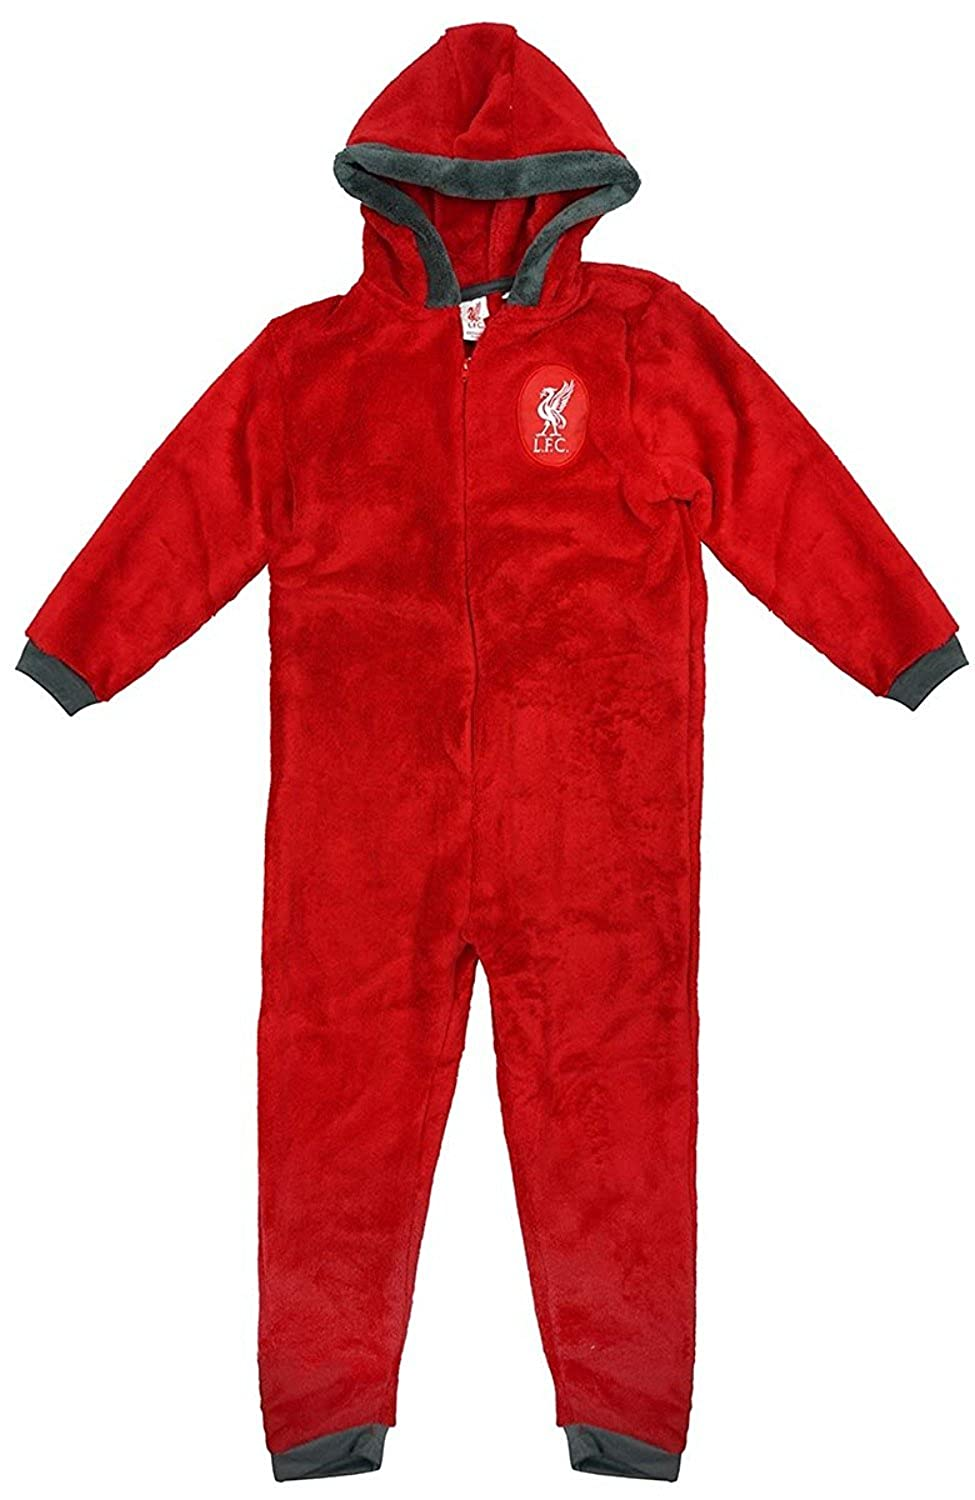 F4S® Boys Liverpool Football Club LFC Soft Luxury Fleece Zipper Sleepsuit Onesie Romper, Sizes from Ages 3-12